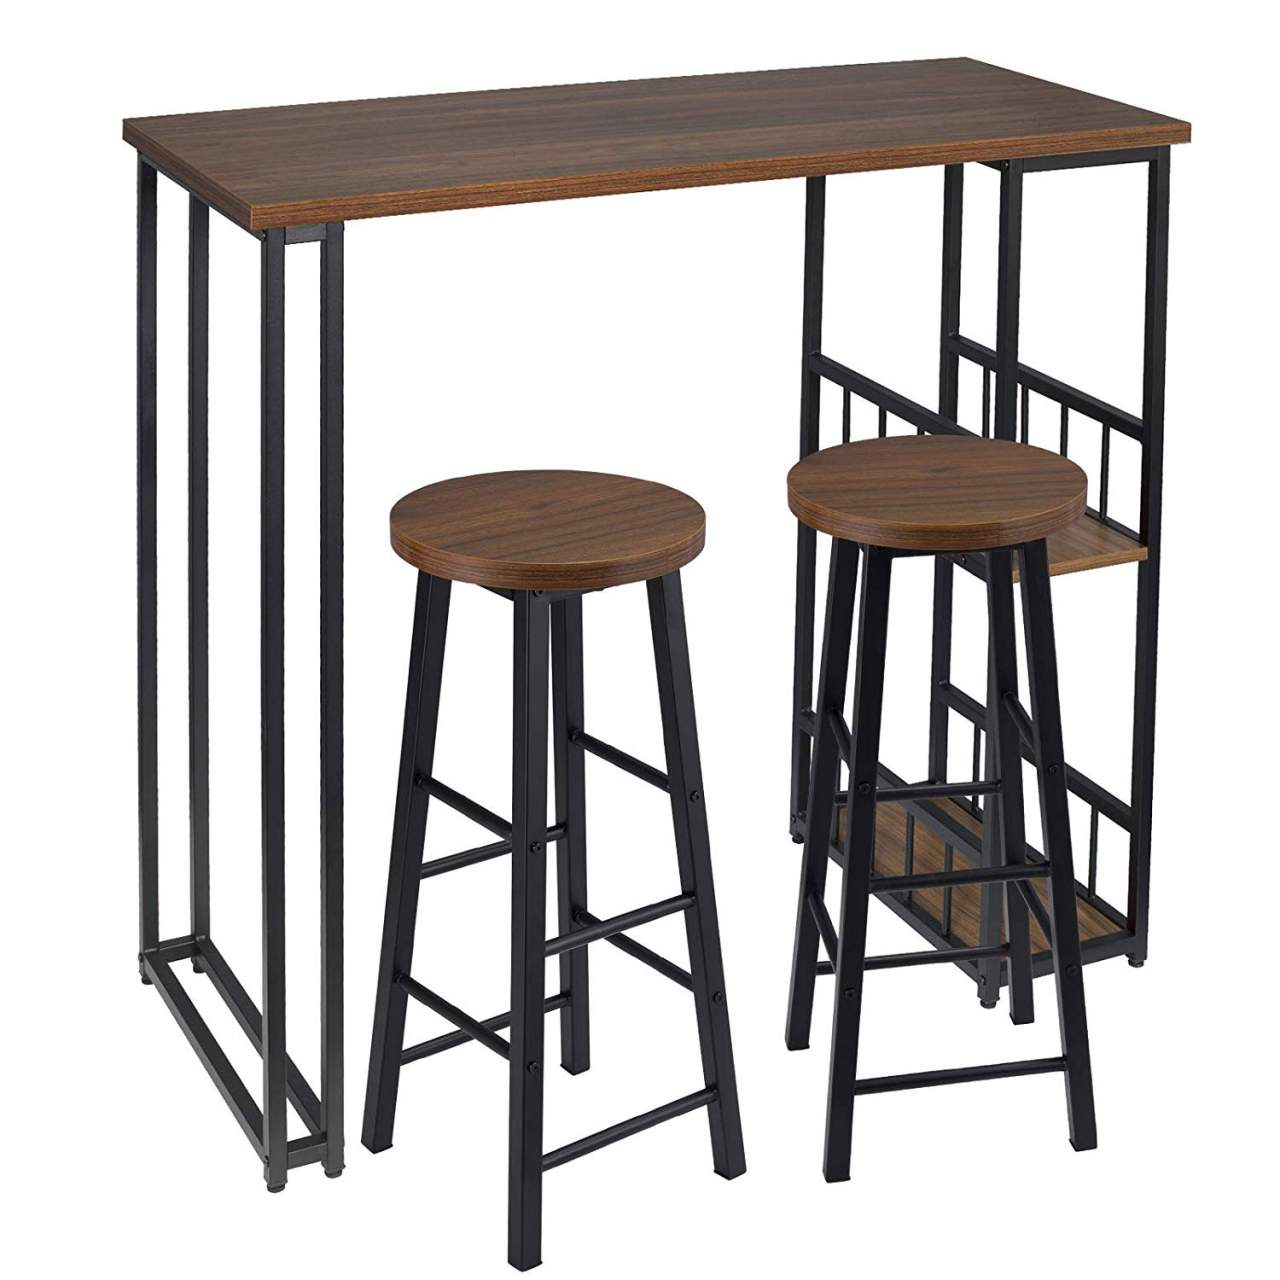 1 X Bar Table 2 Stools With